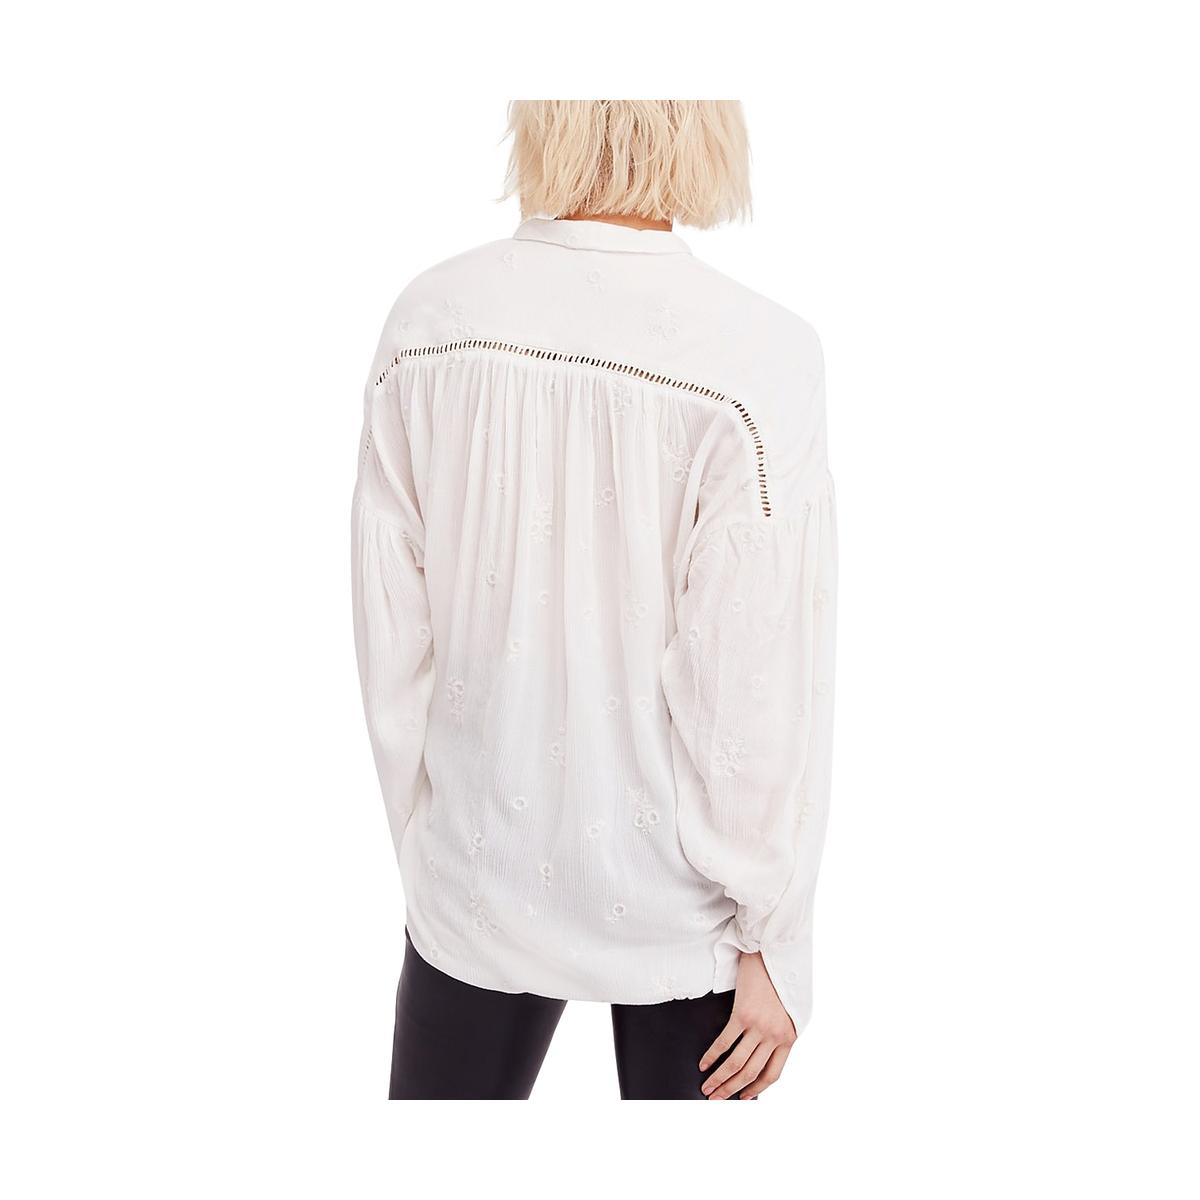 Free People Womens Wishful Moments Embroidered Tie-Neck Blouse Top BHFO 2600